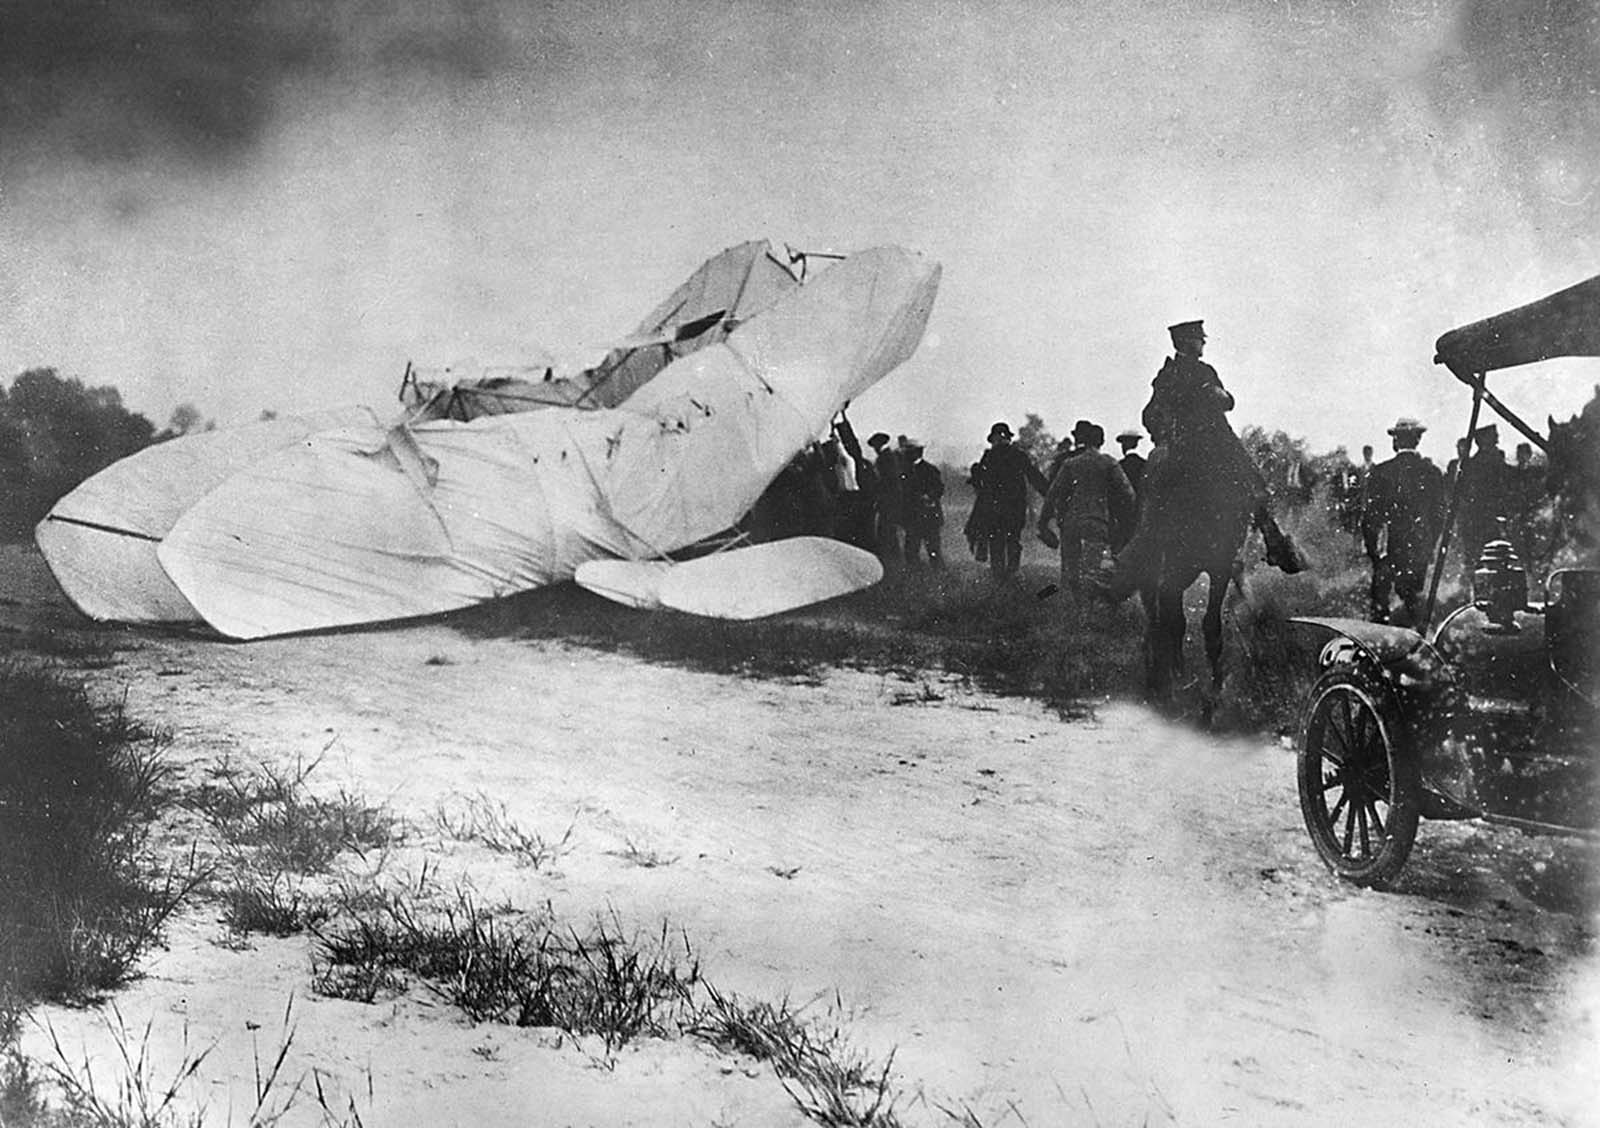 Troops of the U.S. Army Signal Corps rush to the site of a crashed plane to recover the pilot Orville Wright and his passenger, army observer Lieutenant Thomas E. Selfridge, from the wreckage on September 17, 1908, in Fort Myer, Virginia. The plane crashed during a demonstration flight at a military installation, making Lt. Selfridge, who died from his injuries, the first fatality of a military airplane crash. Orville suffered a broken left leg and four broken ribs.